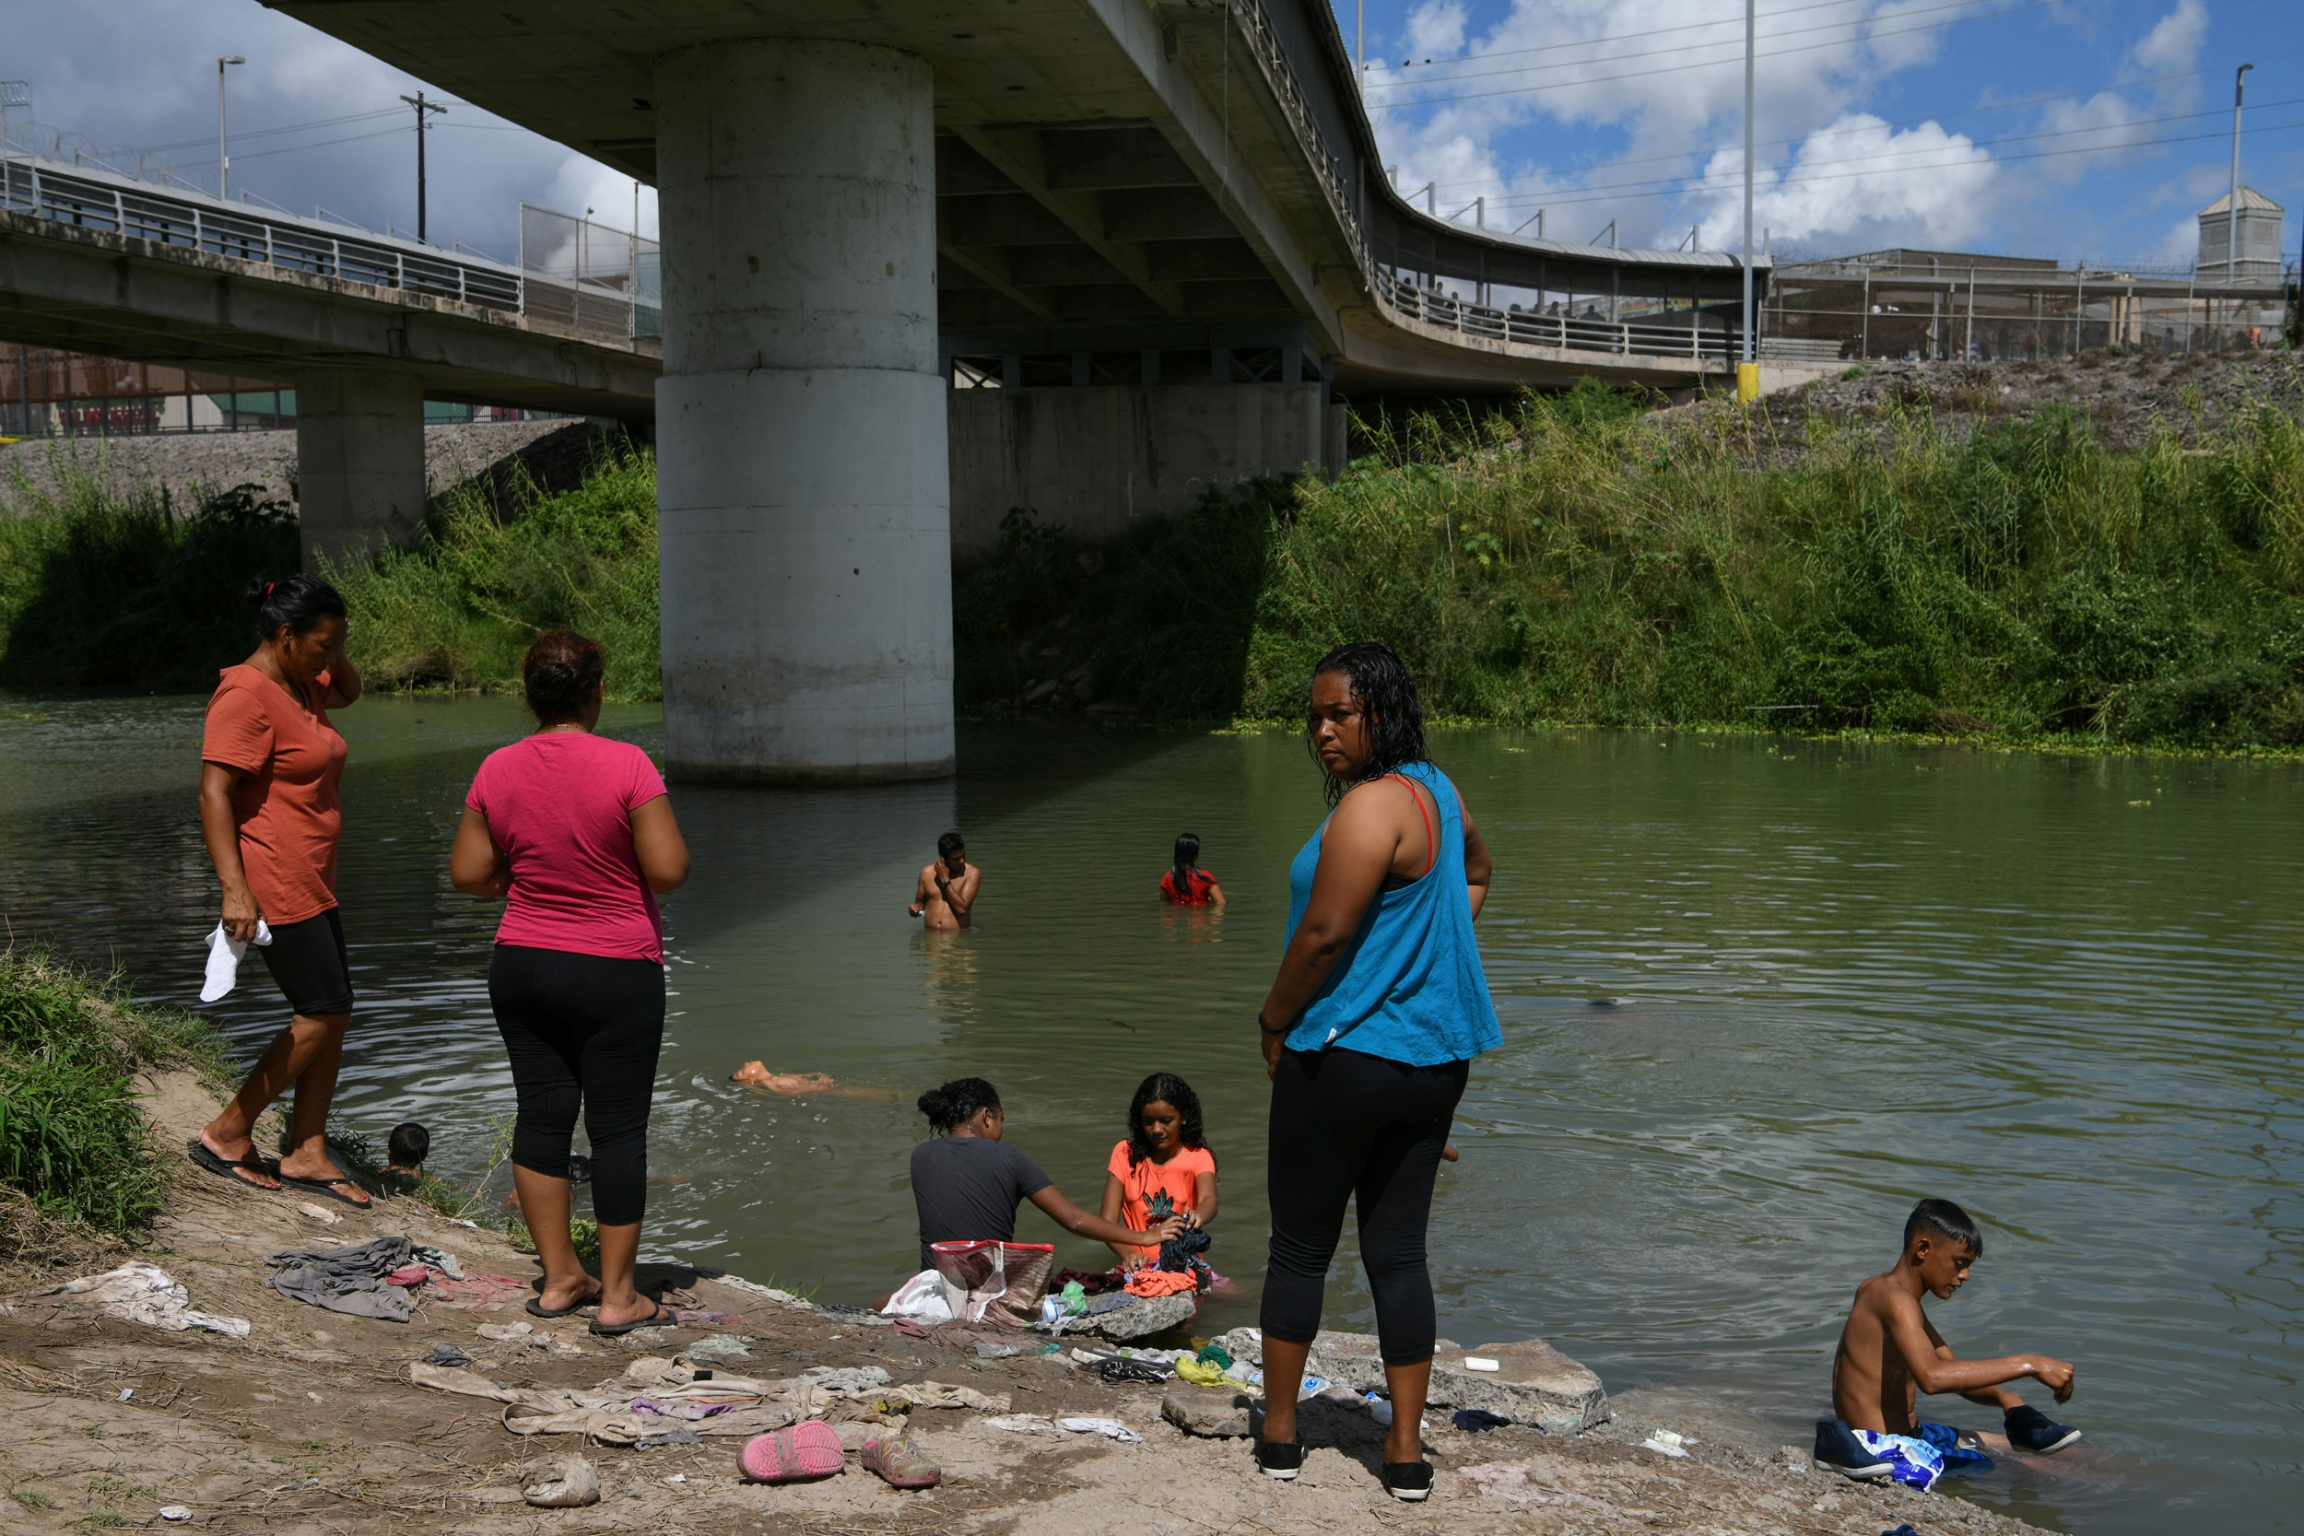 Several people are shown standing on the shore and in the Rio Grande river under a large bridge.